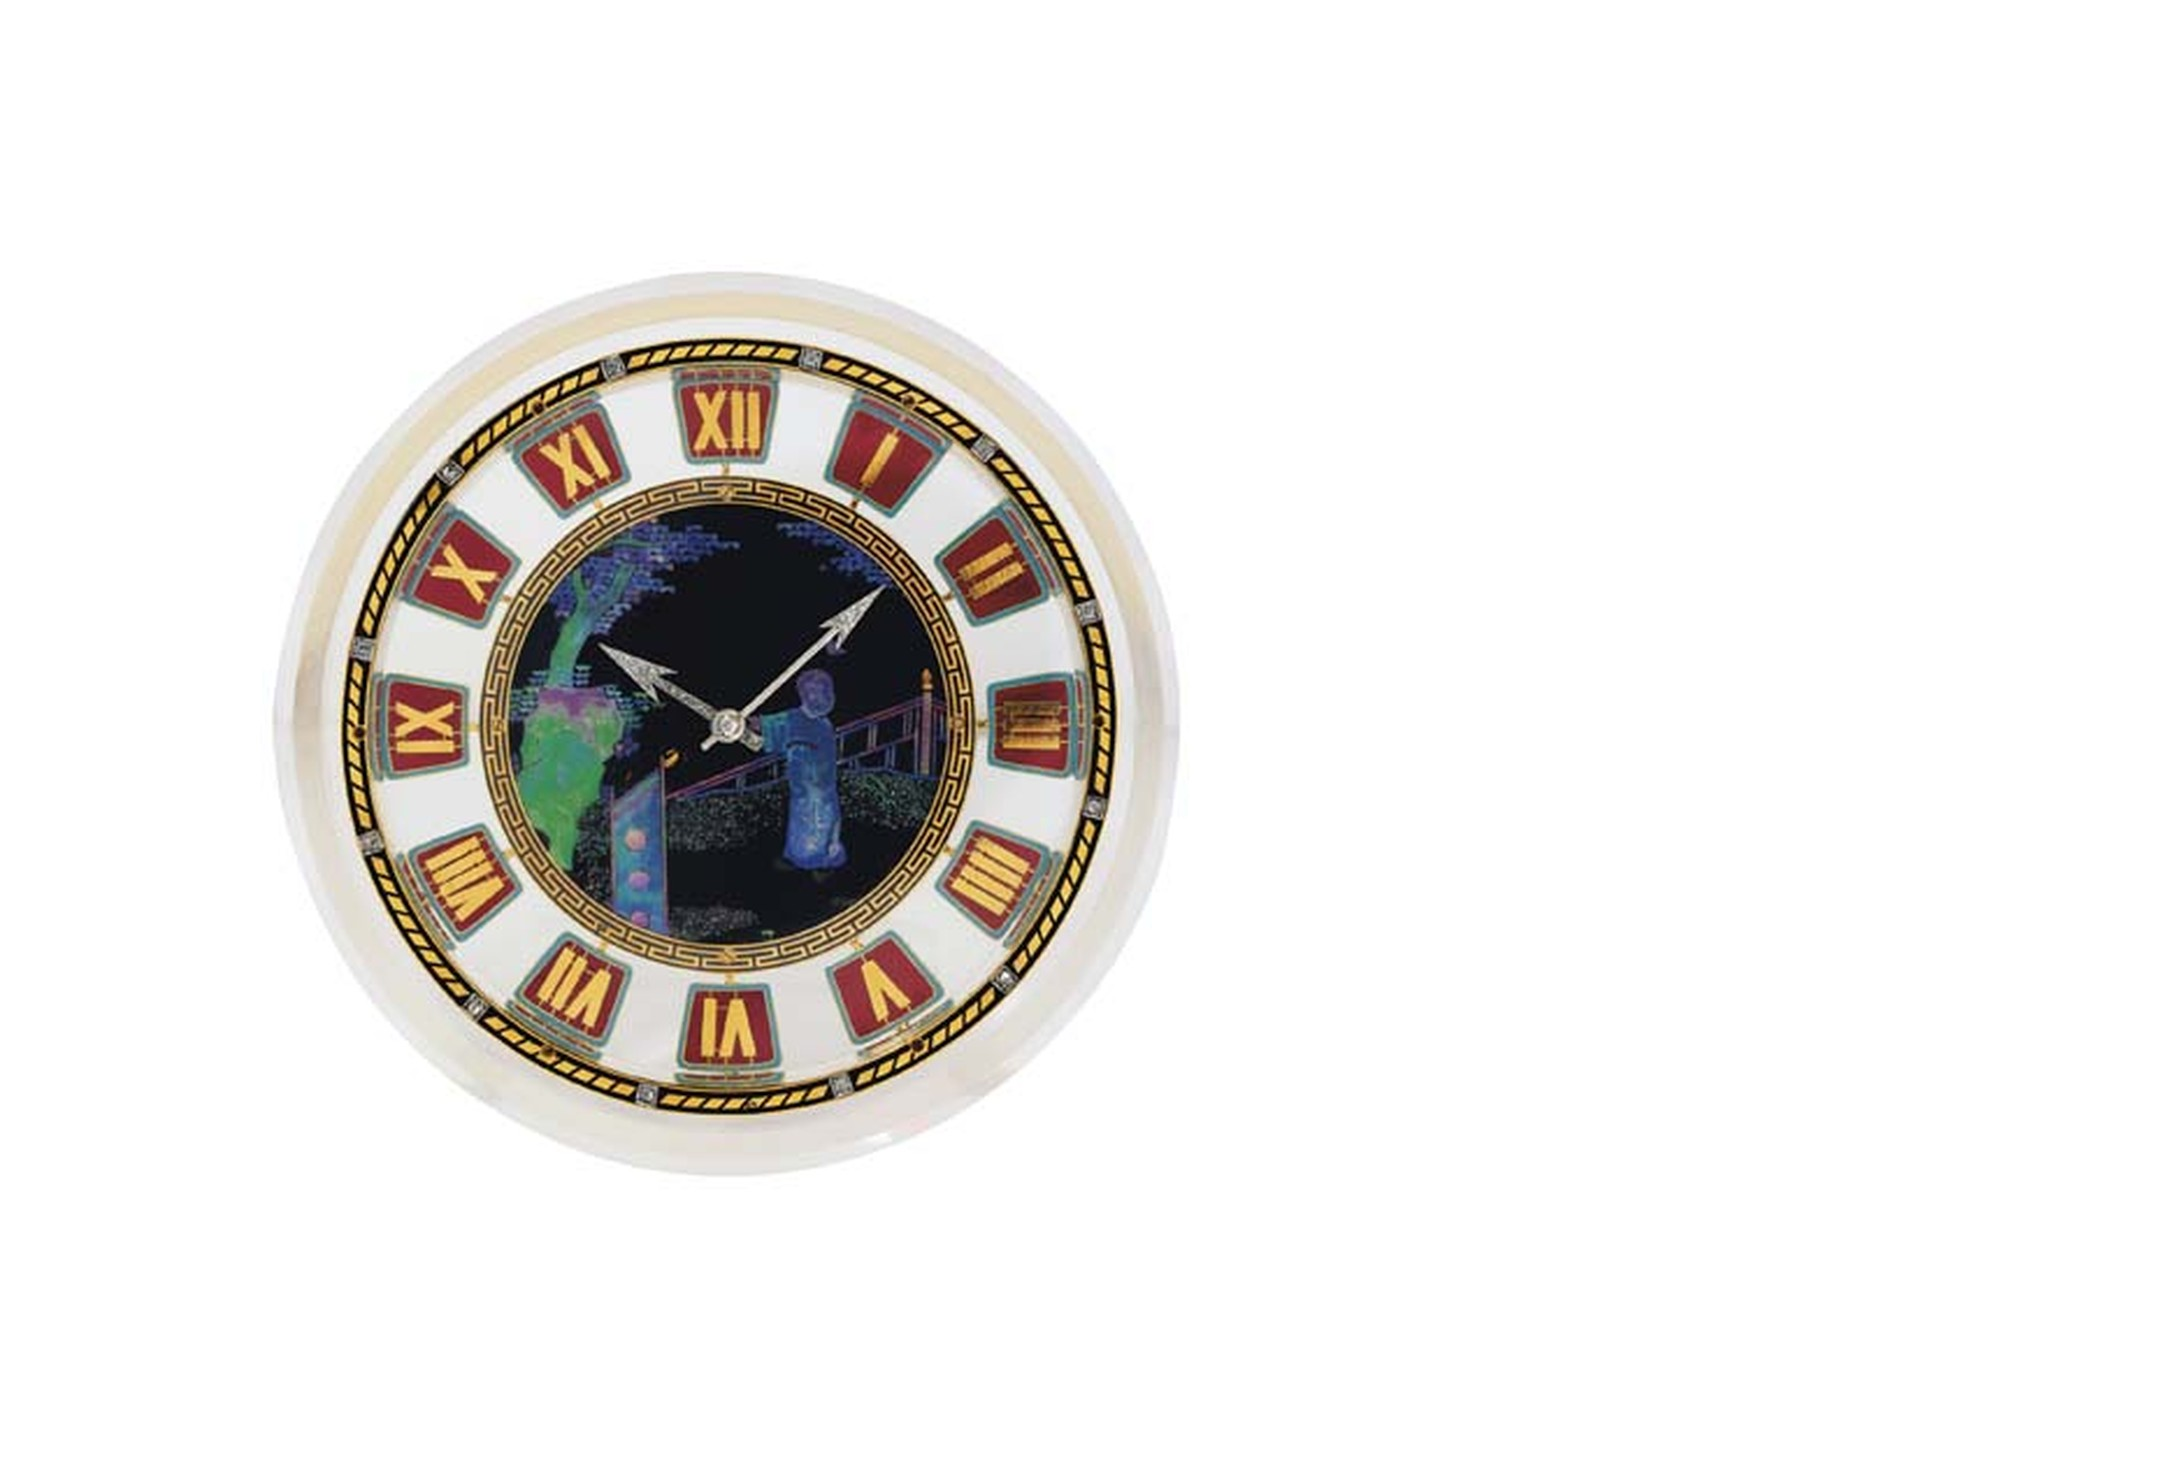 Christie's Lot 239 Cartier rock crystal, enamel, mother-of-pearl and diamond clock dating from circa 1925 (estimate: £40,000-60,000).